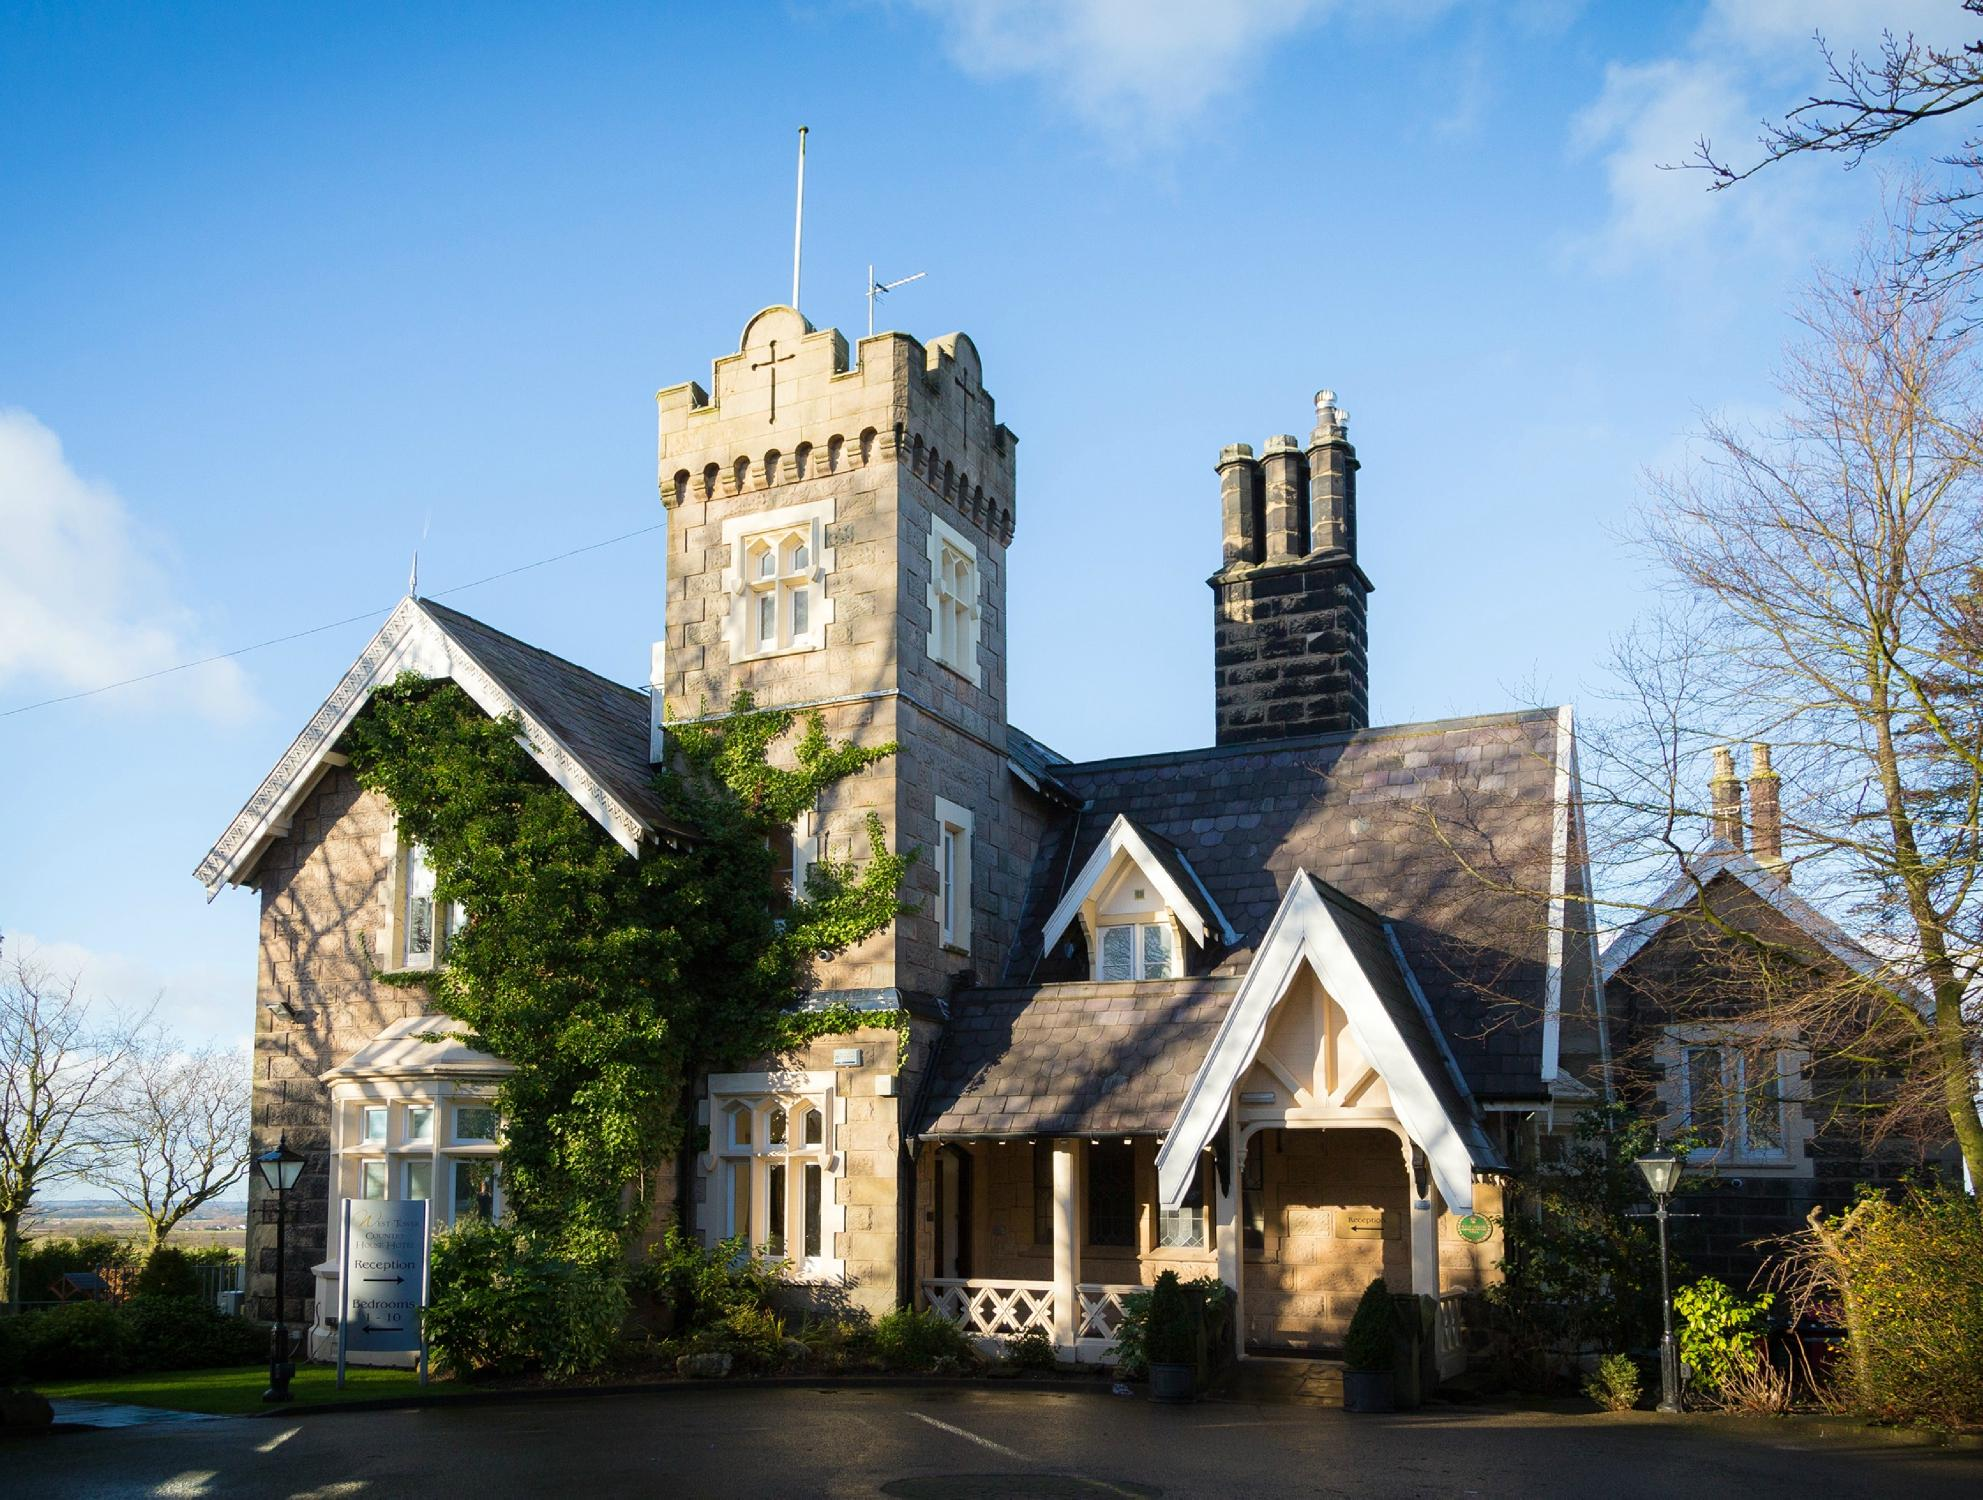 West Tower Country House Hotel